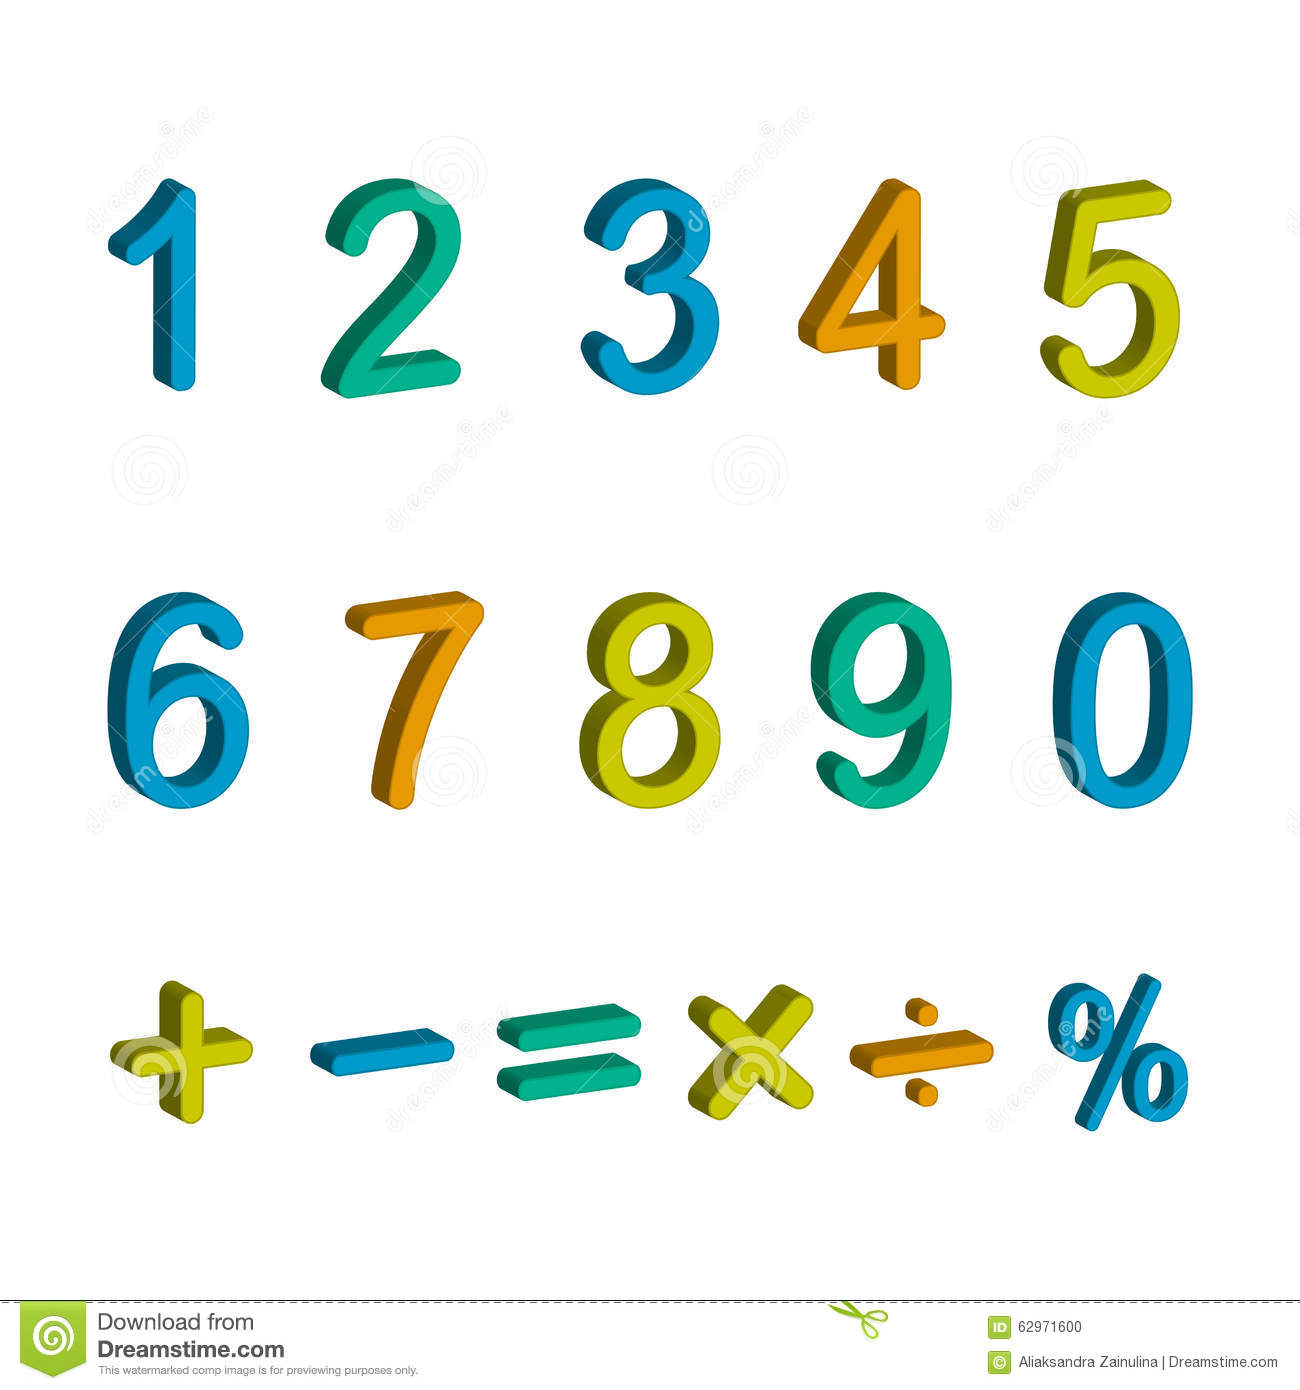 Illustration of numbers and maths symbols stock illustration illustration of numbers and maths symbols biocorpaavc Gallery